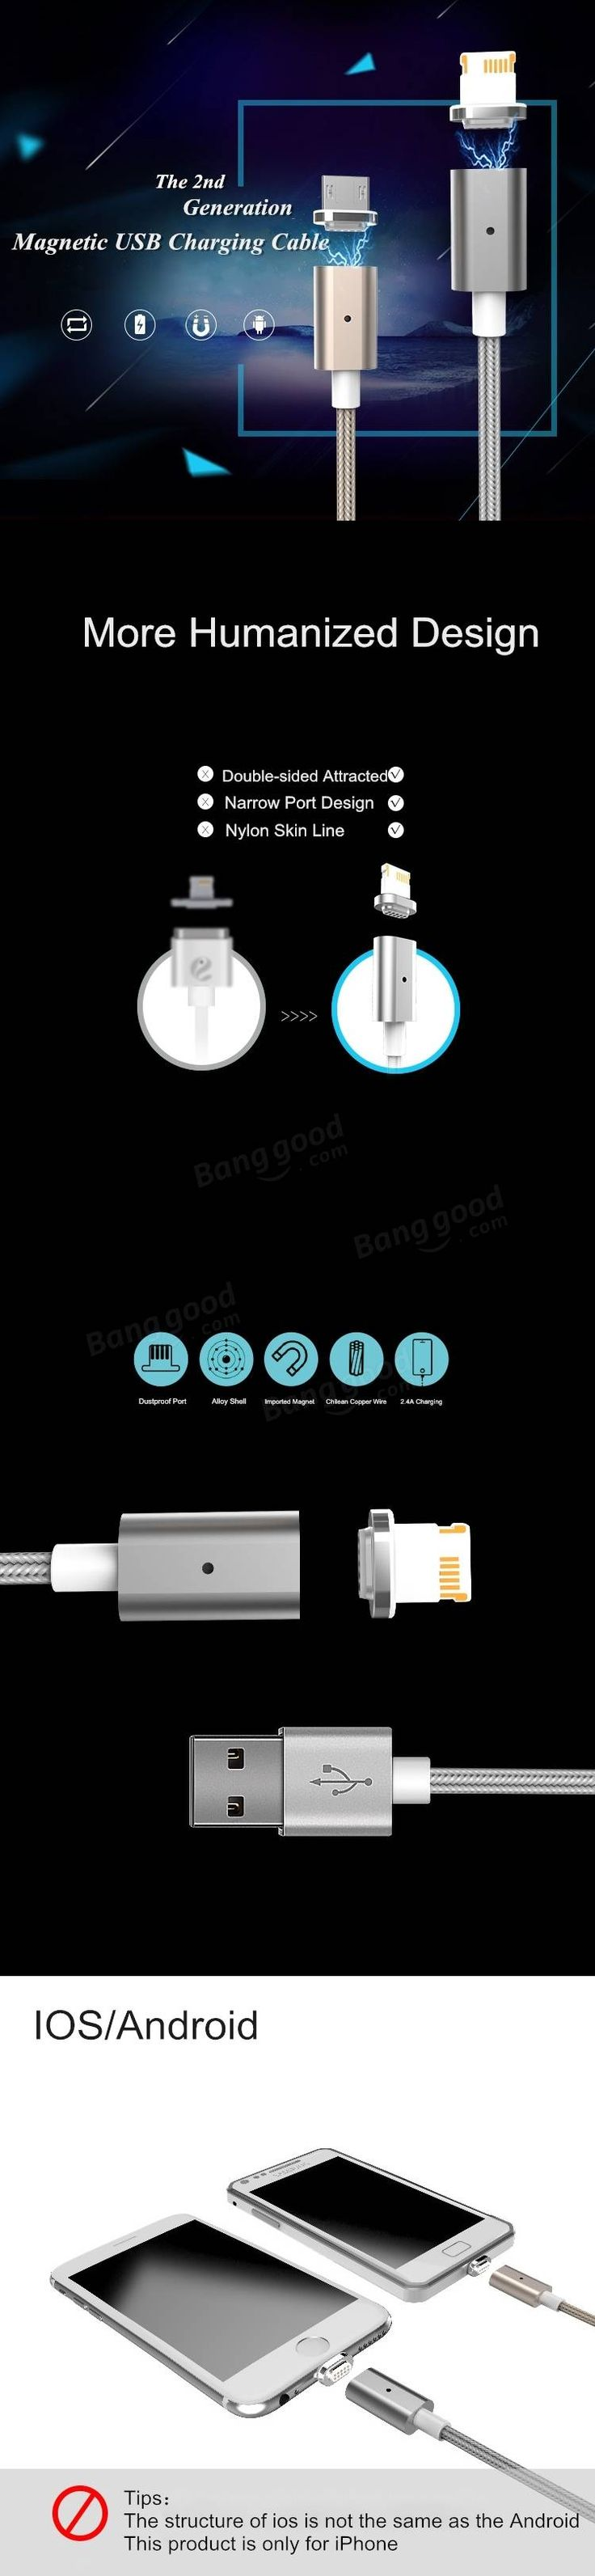 Magnetic 2nd Gen USB Charging Data Transmission Cable For iPhone 5 5S 6 6S Plus Mini Air Sale - Banggood.com